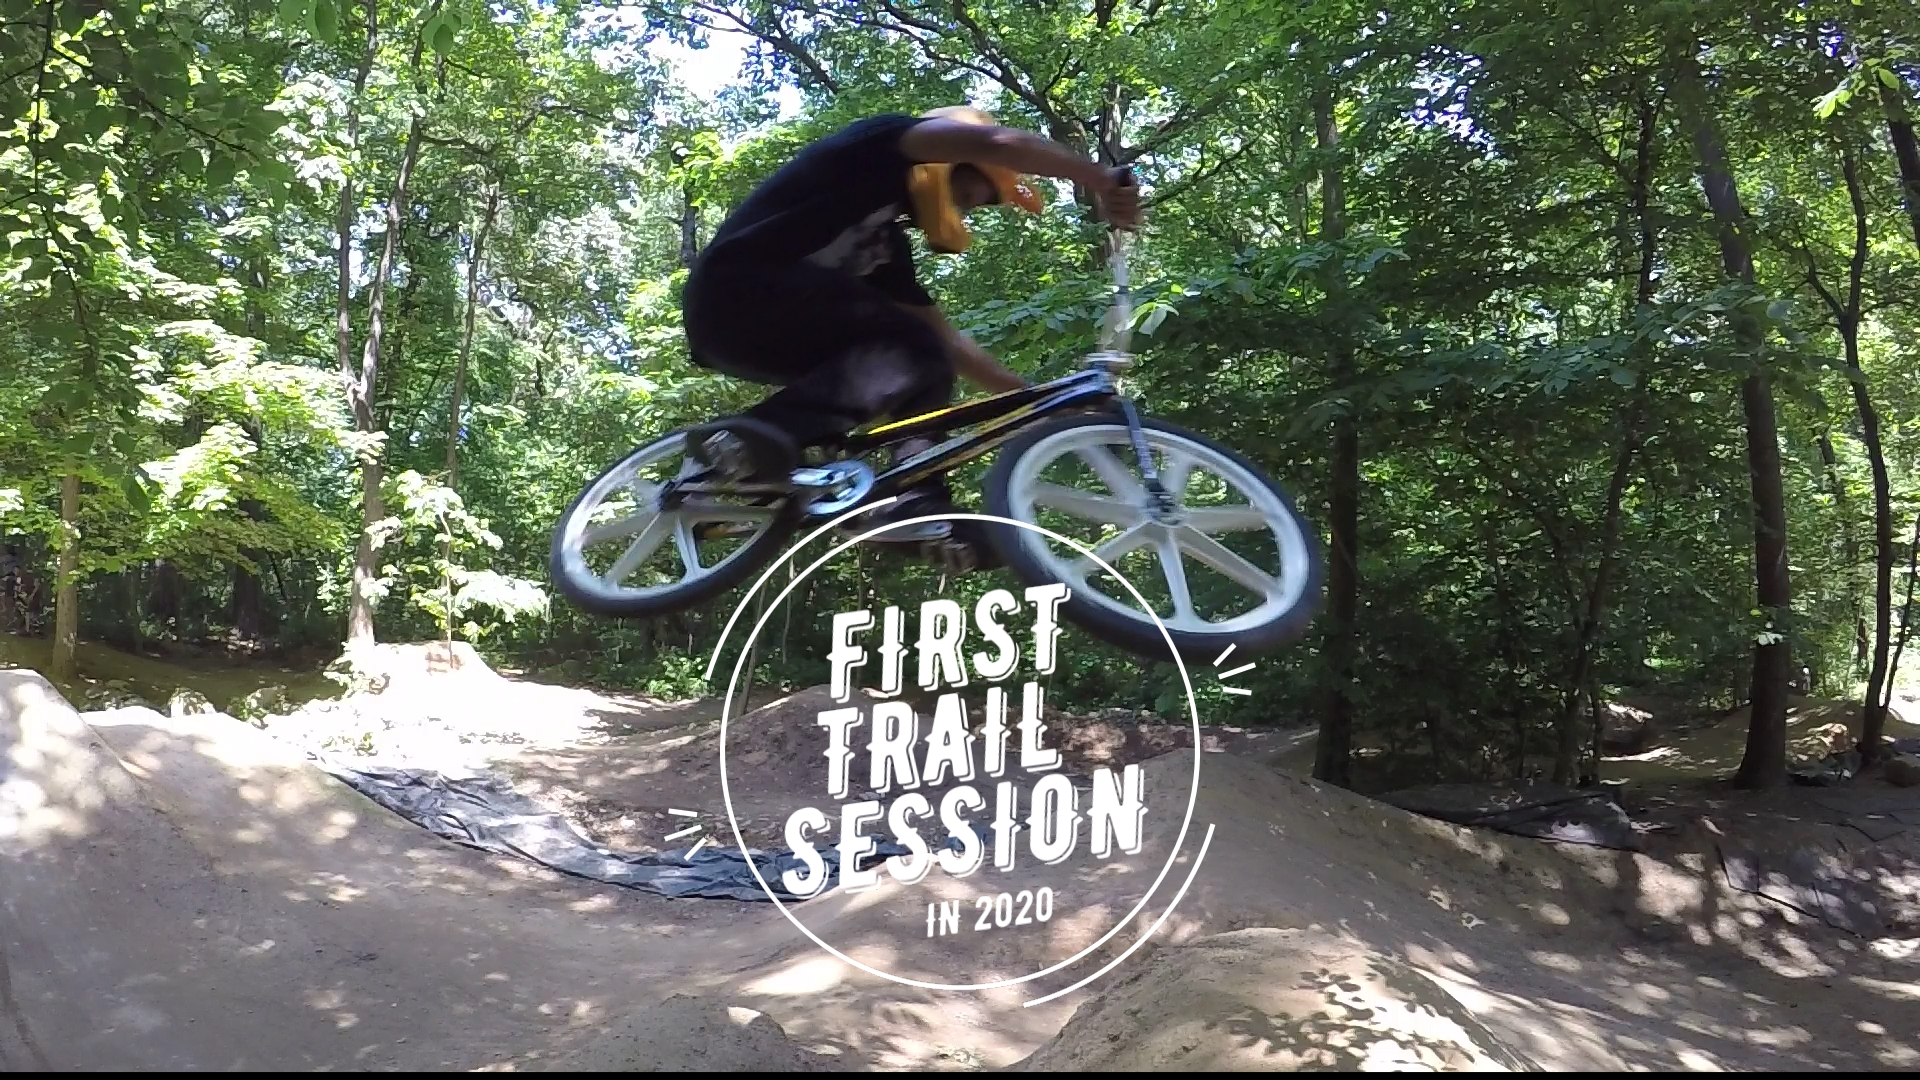 cunningham trail session